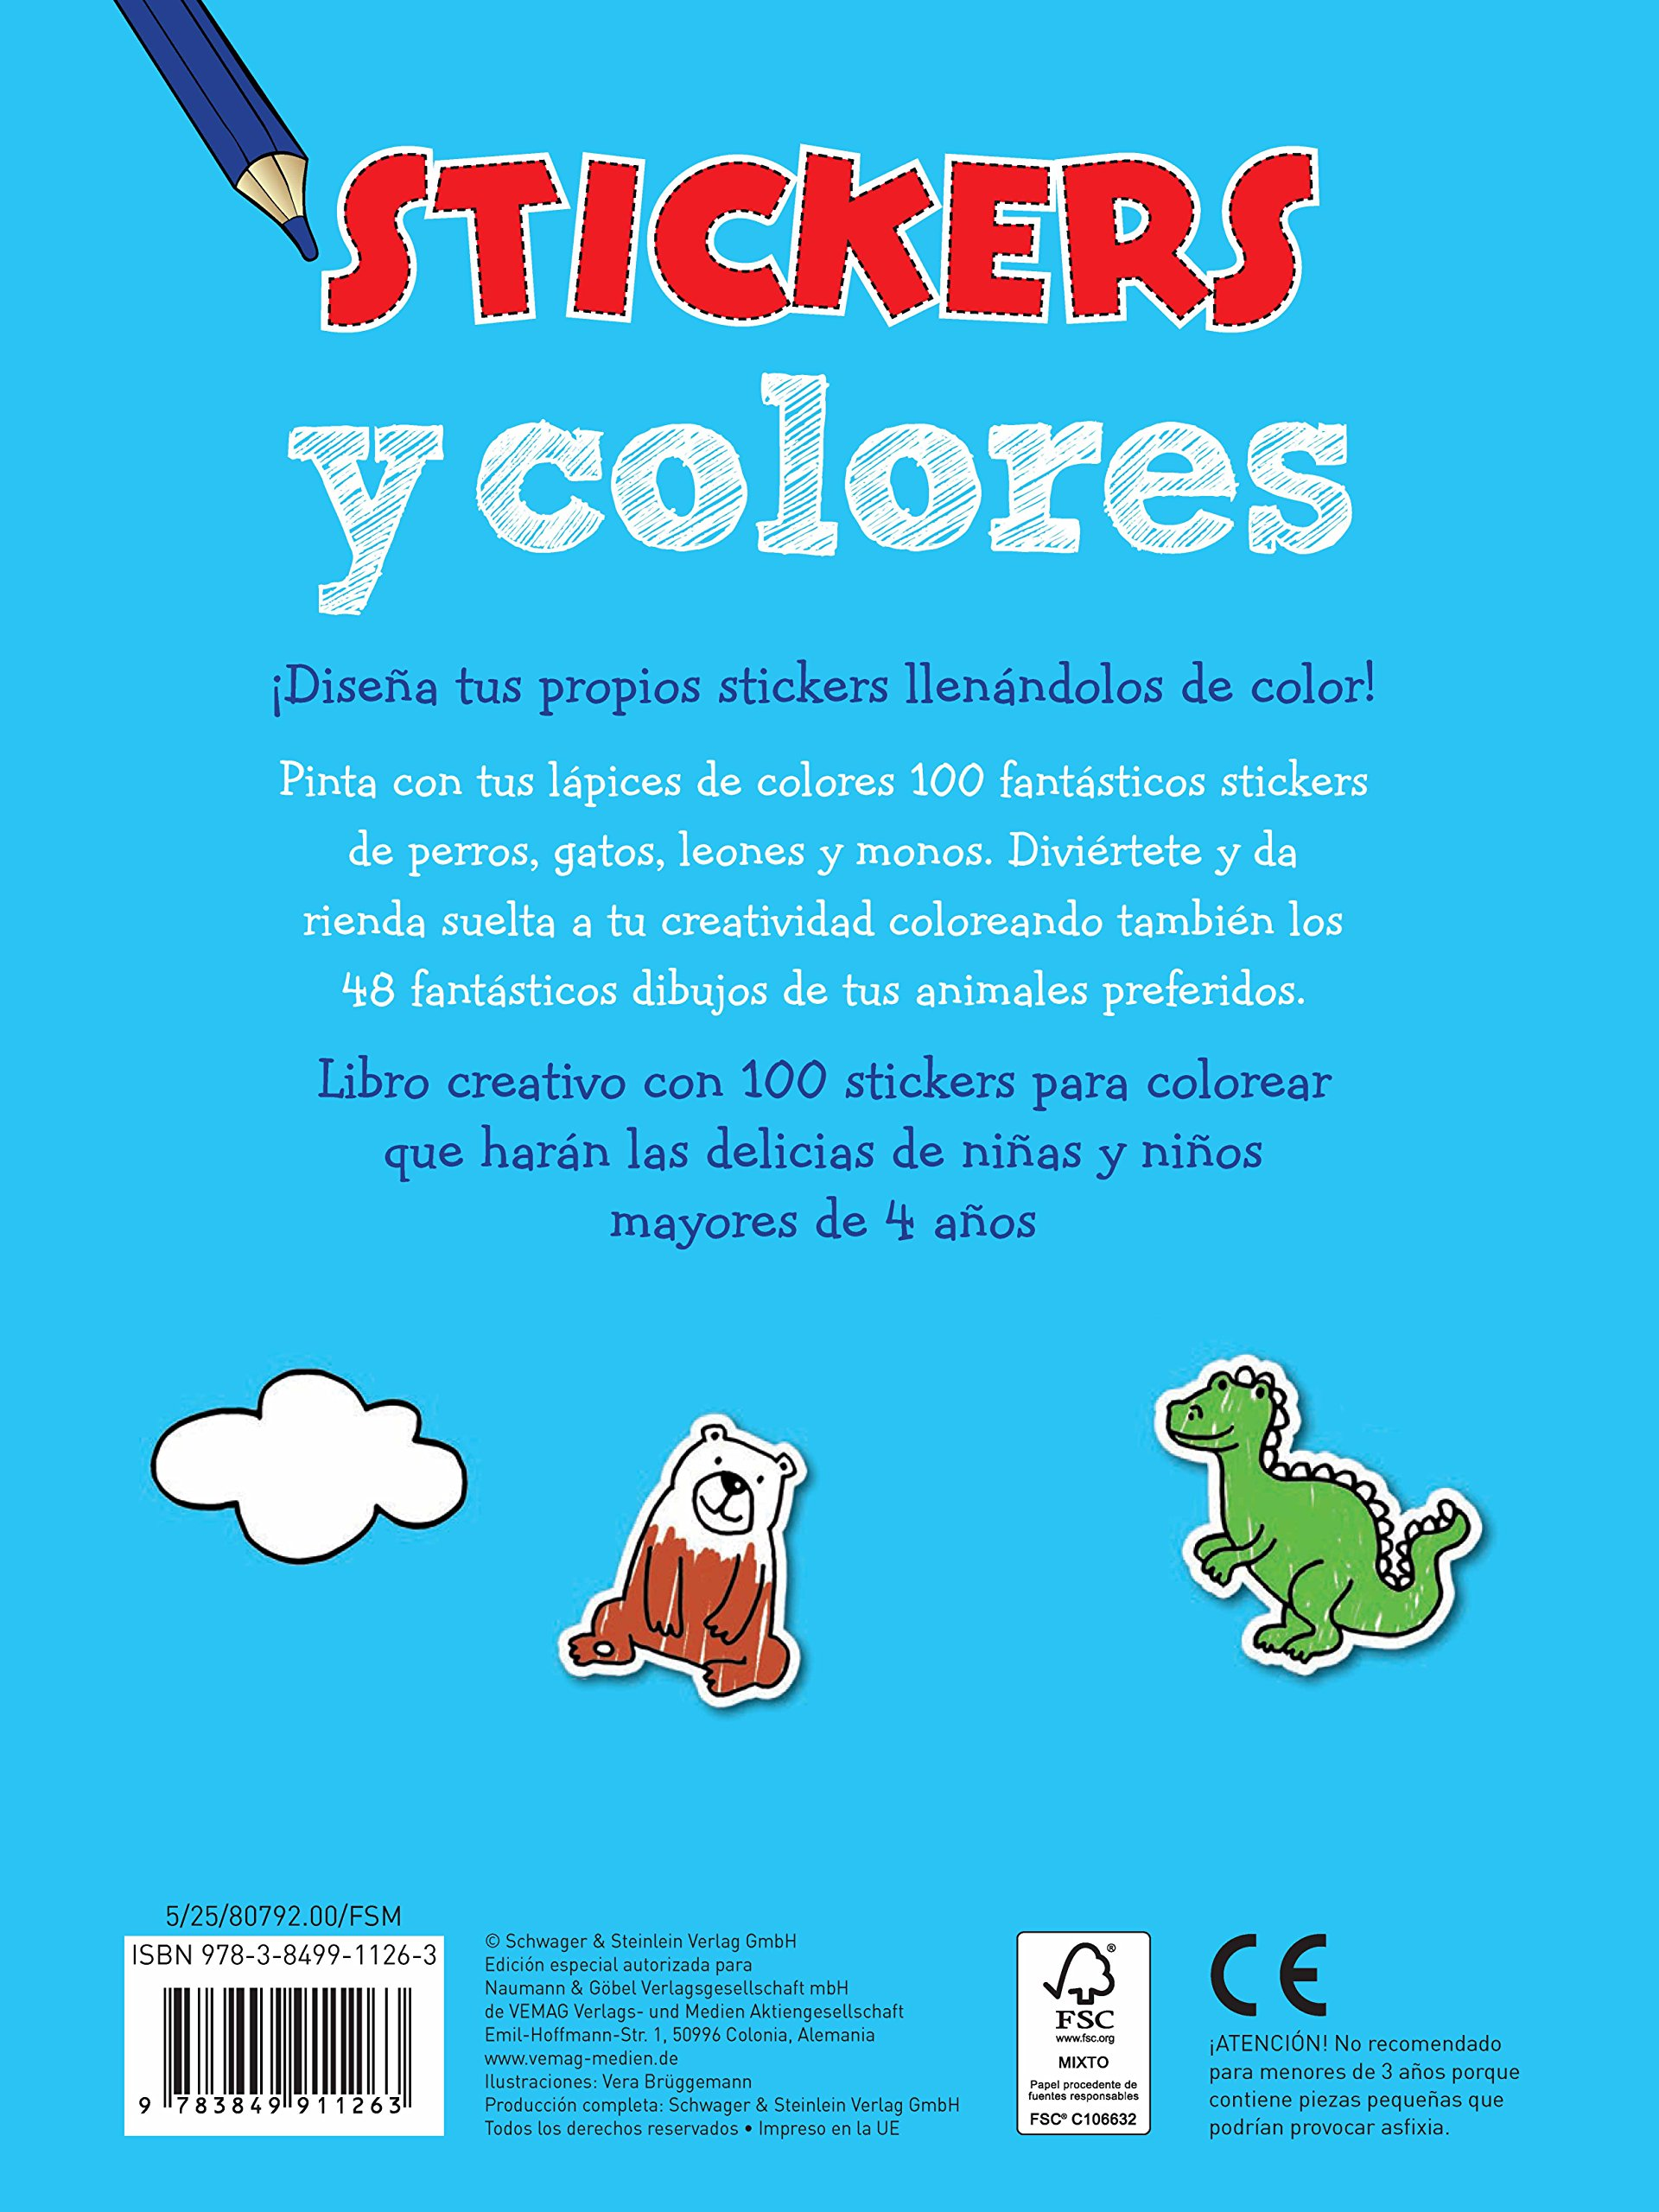 Animales: Con 100 stickers para colorear: 9783849911263 ...